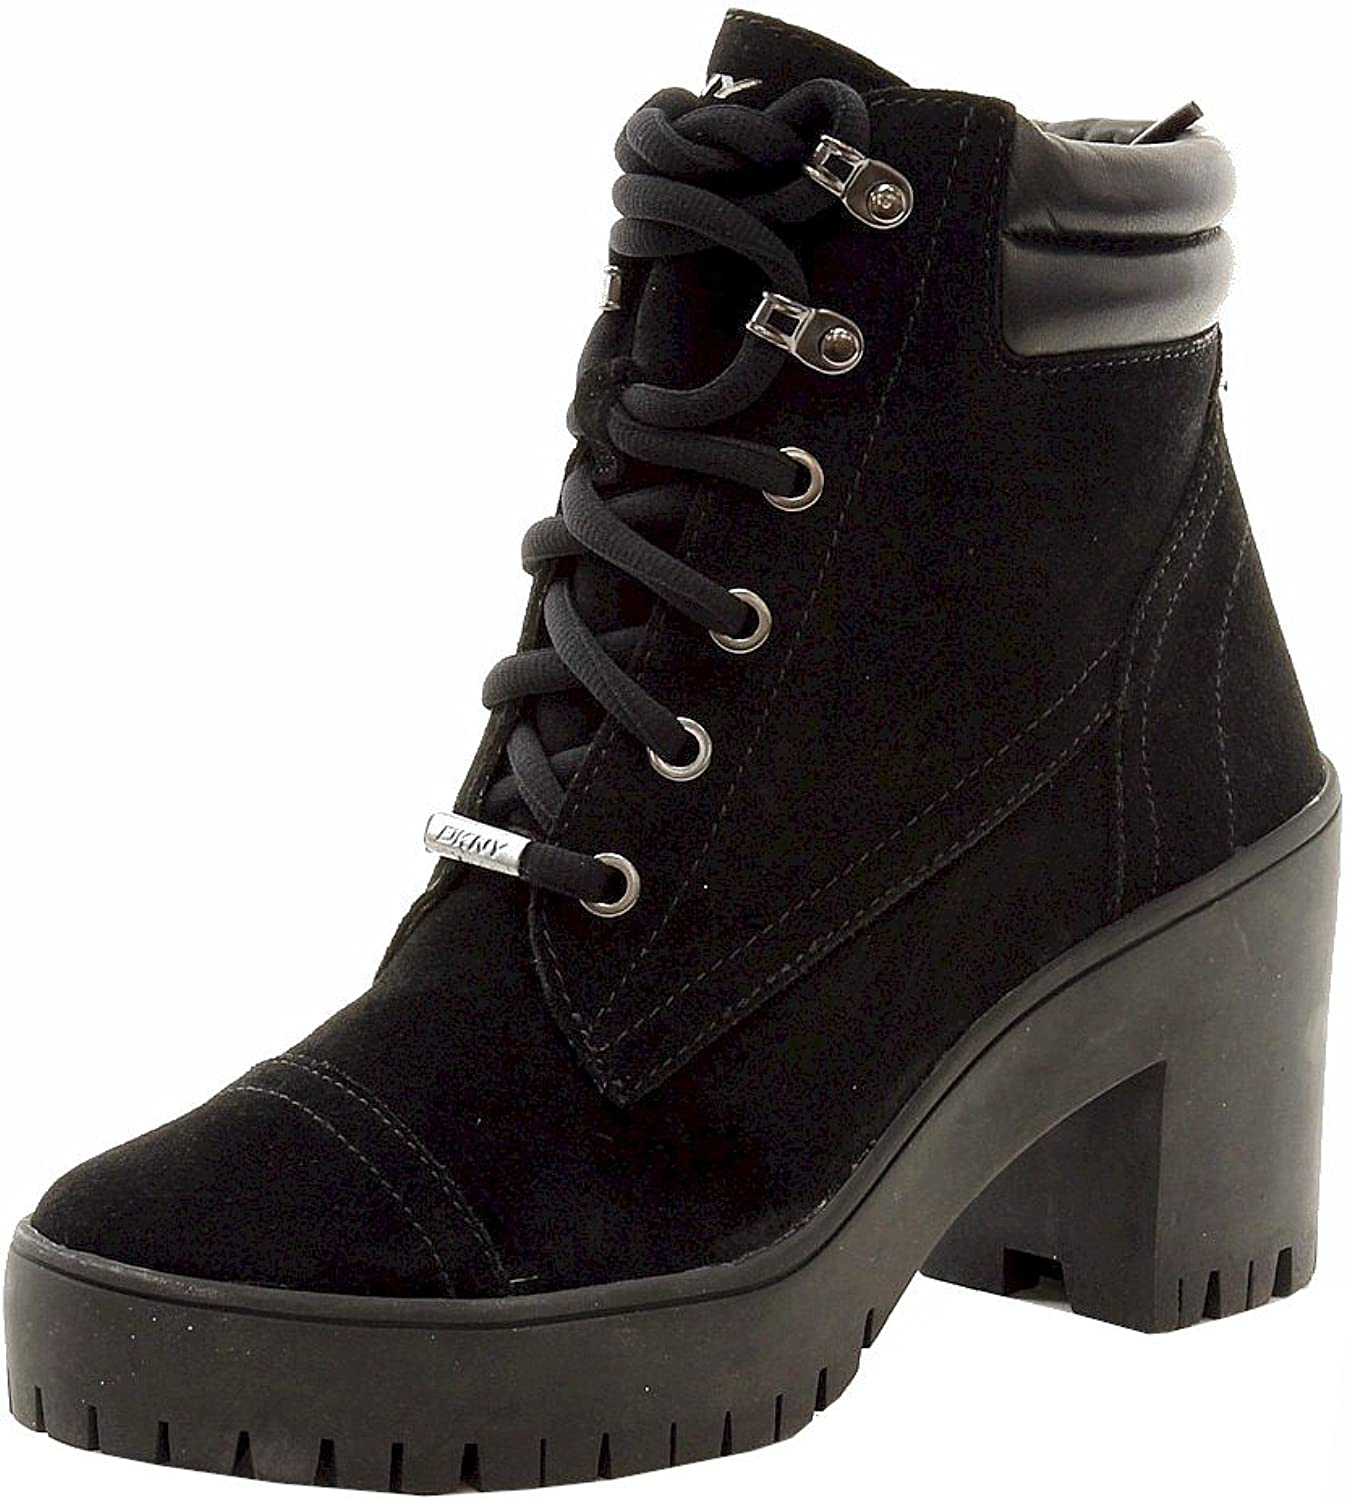 DKNY women Karan Women's Shelby Fashion Black Lace Up Boots shoes